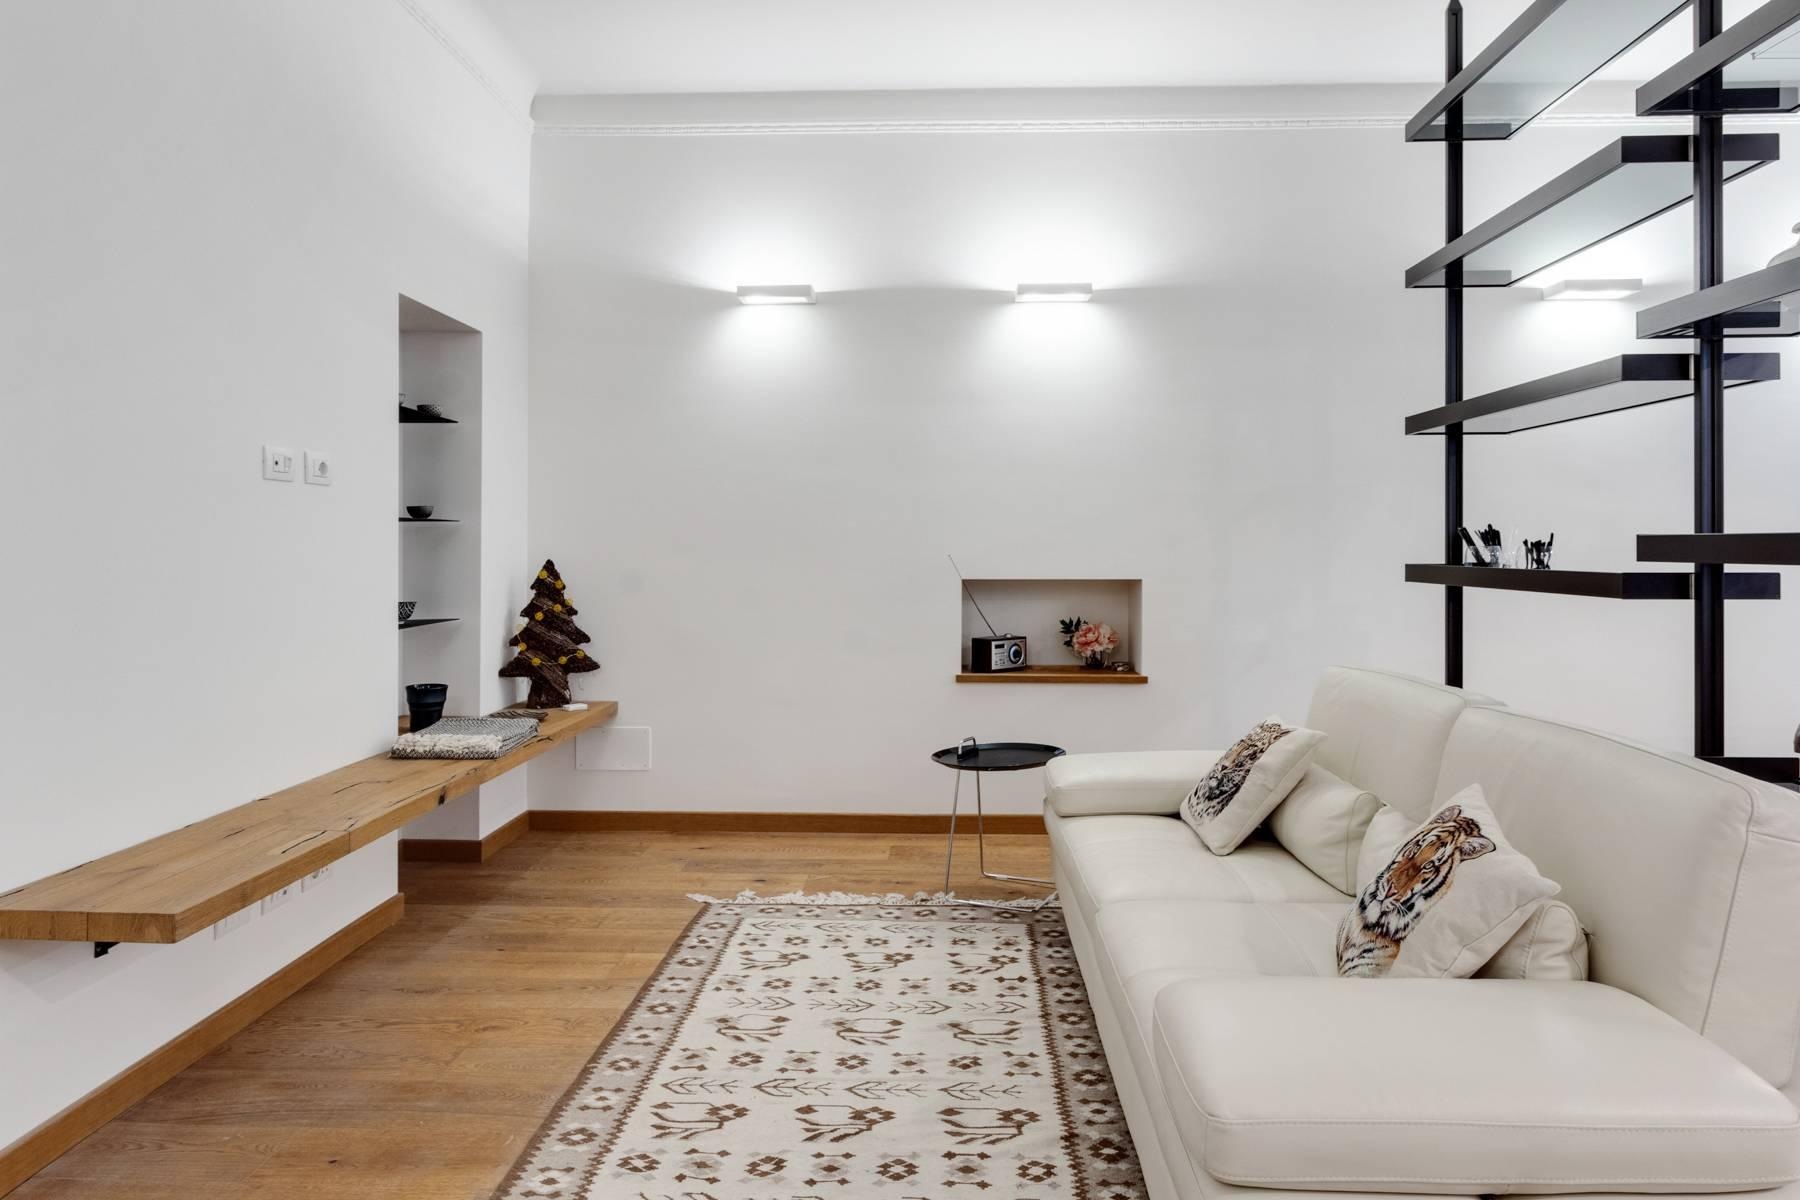 New apartment fully furnished in the center of Turin - 4